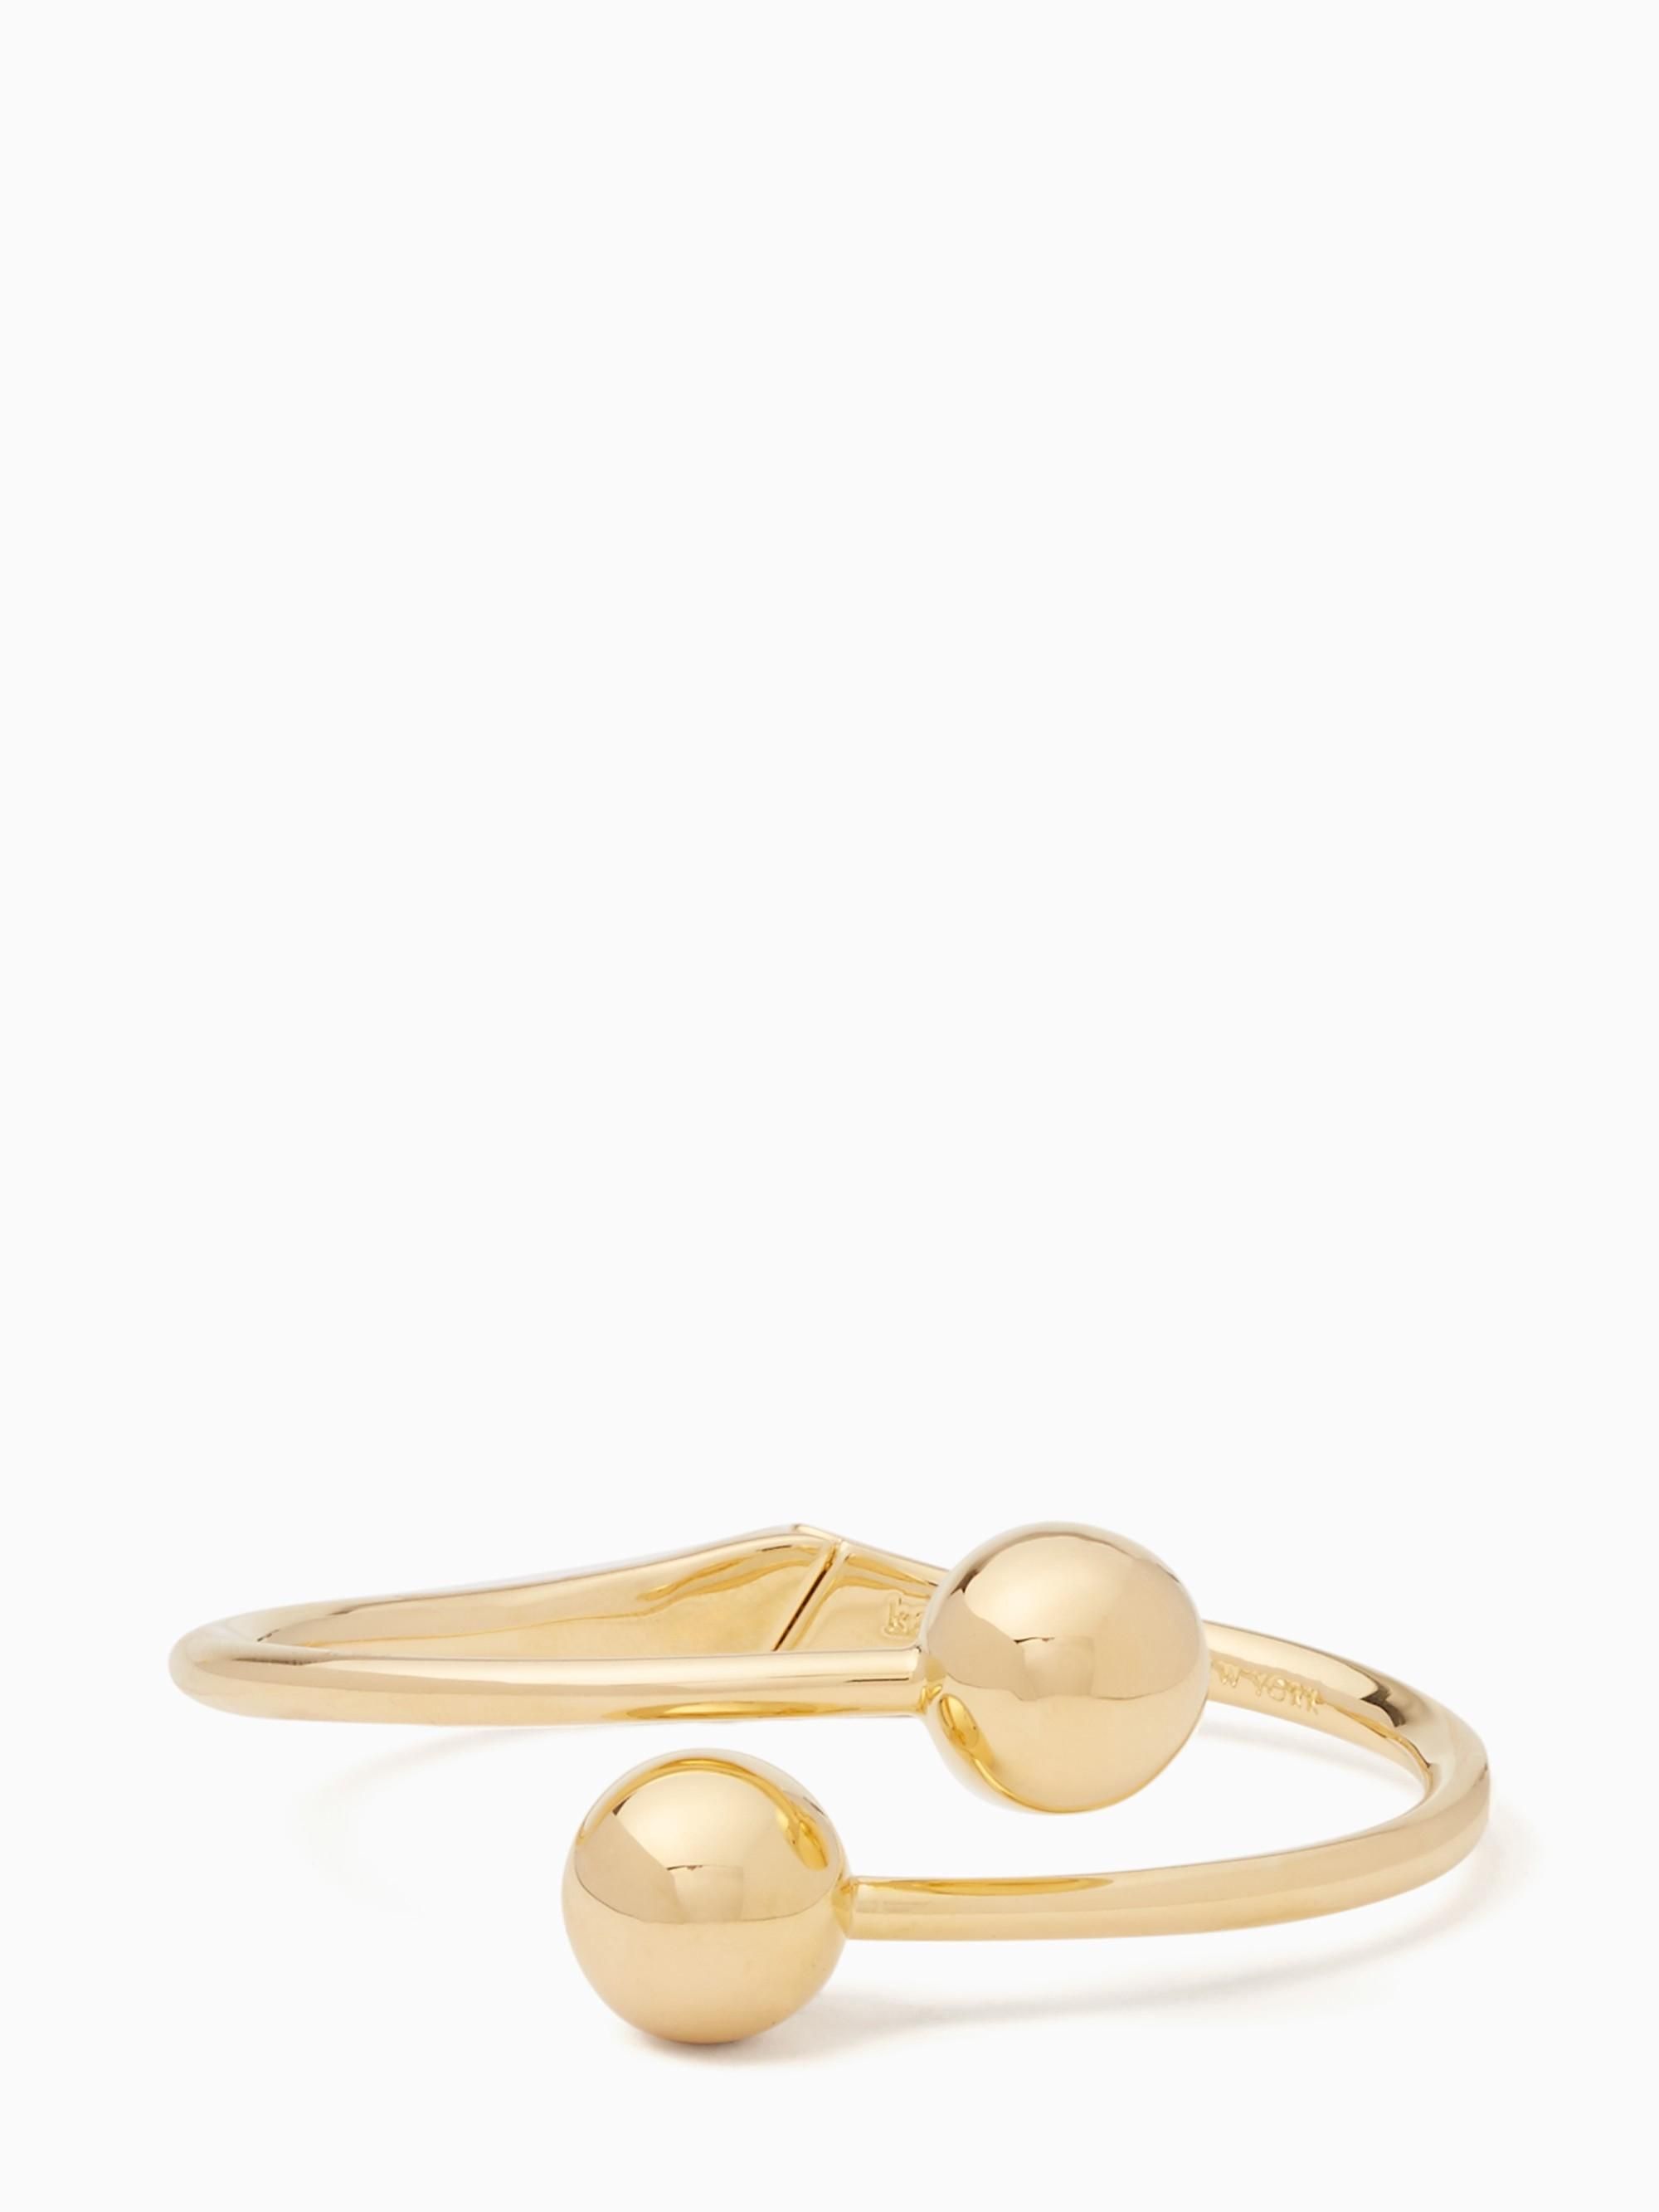 Kate Spade Golden Girl Bauble Open Hinged Cuff